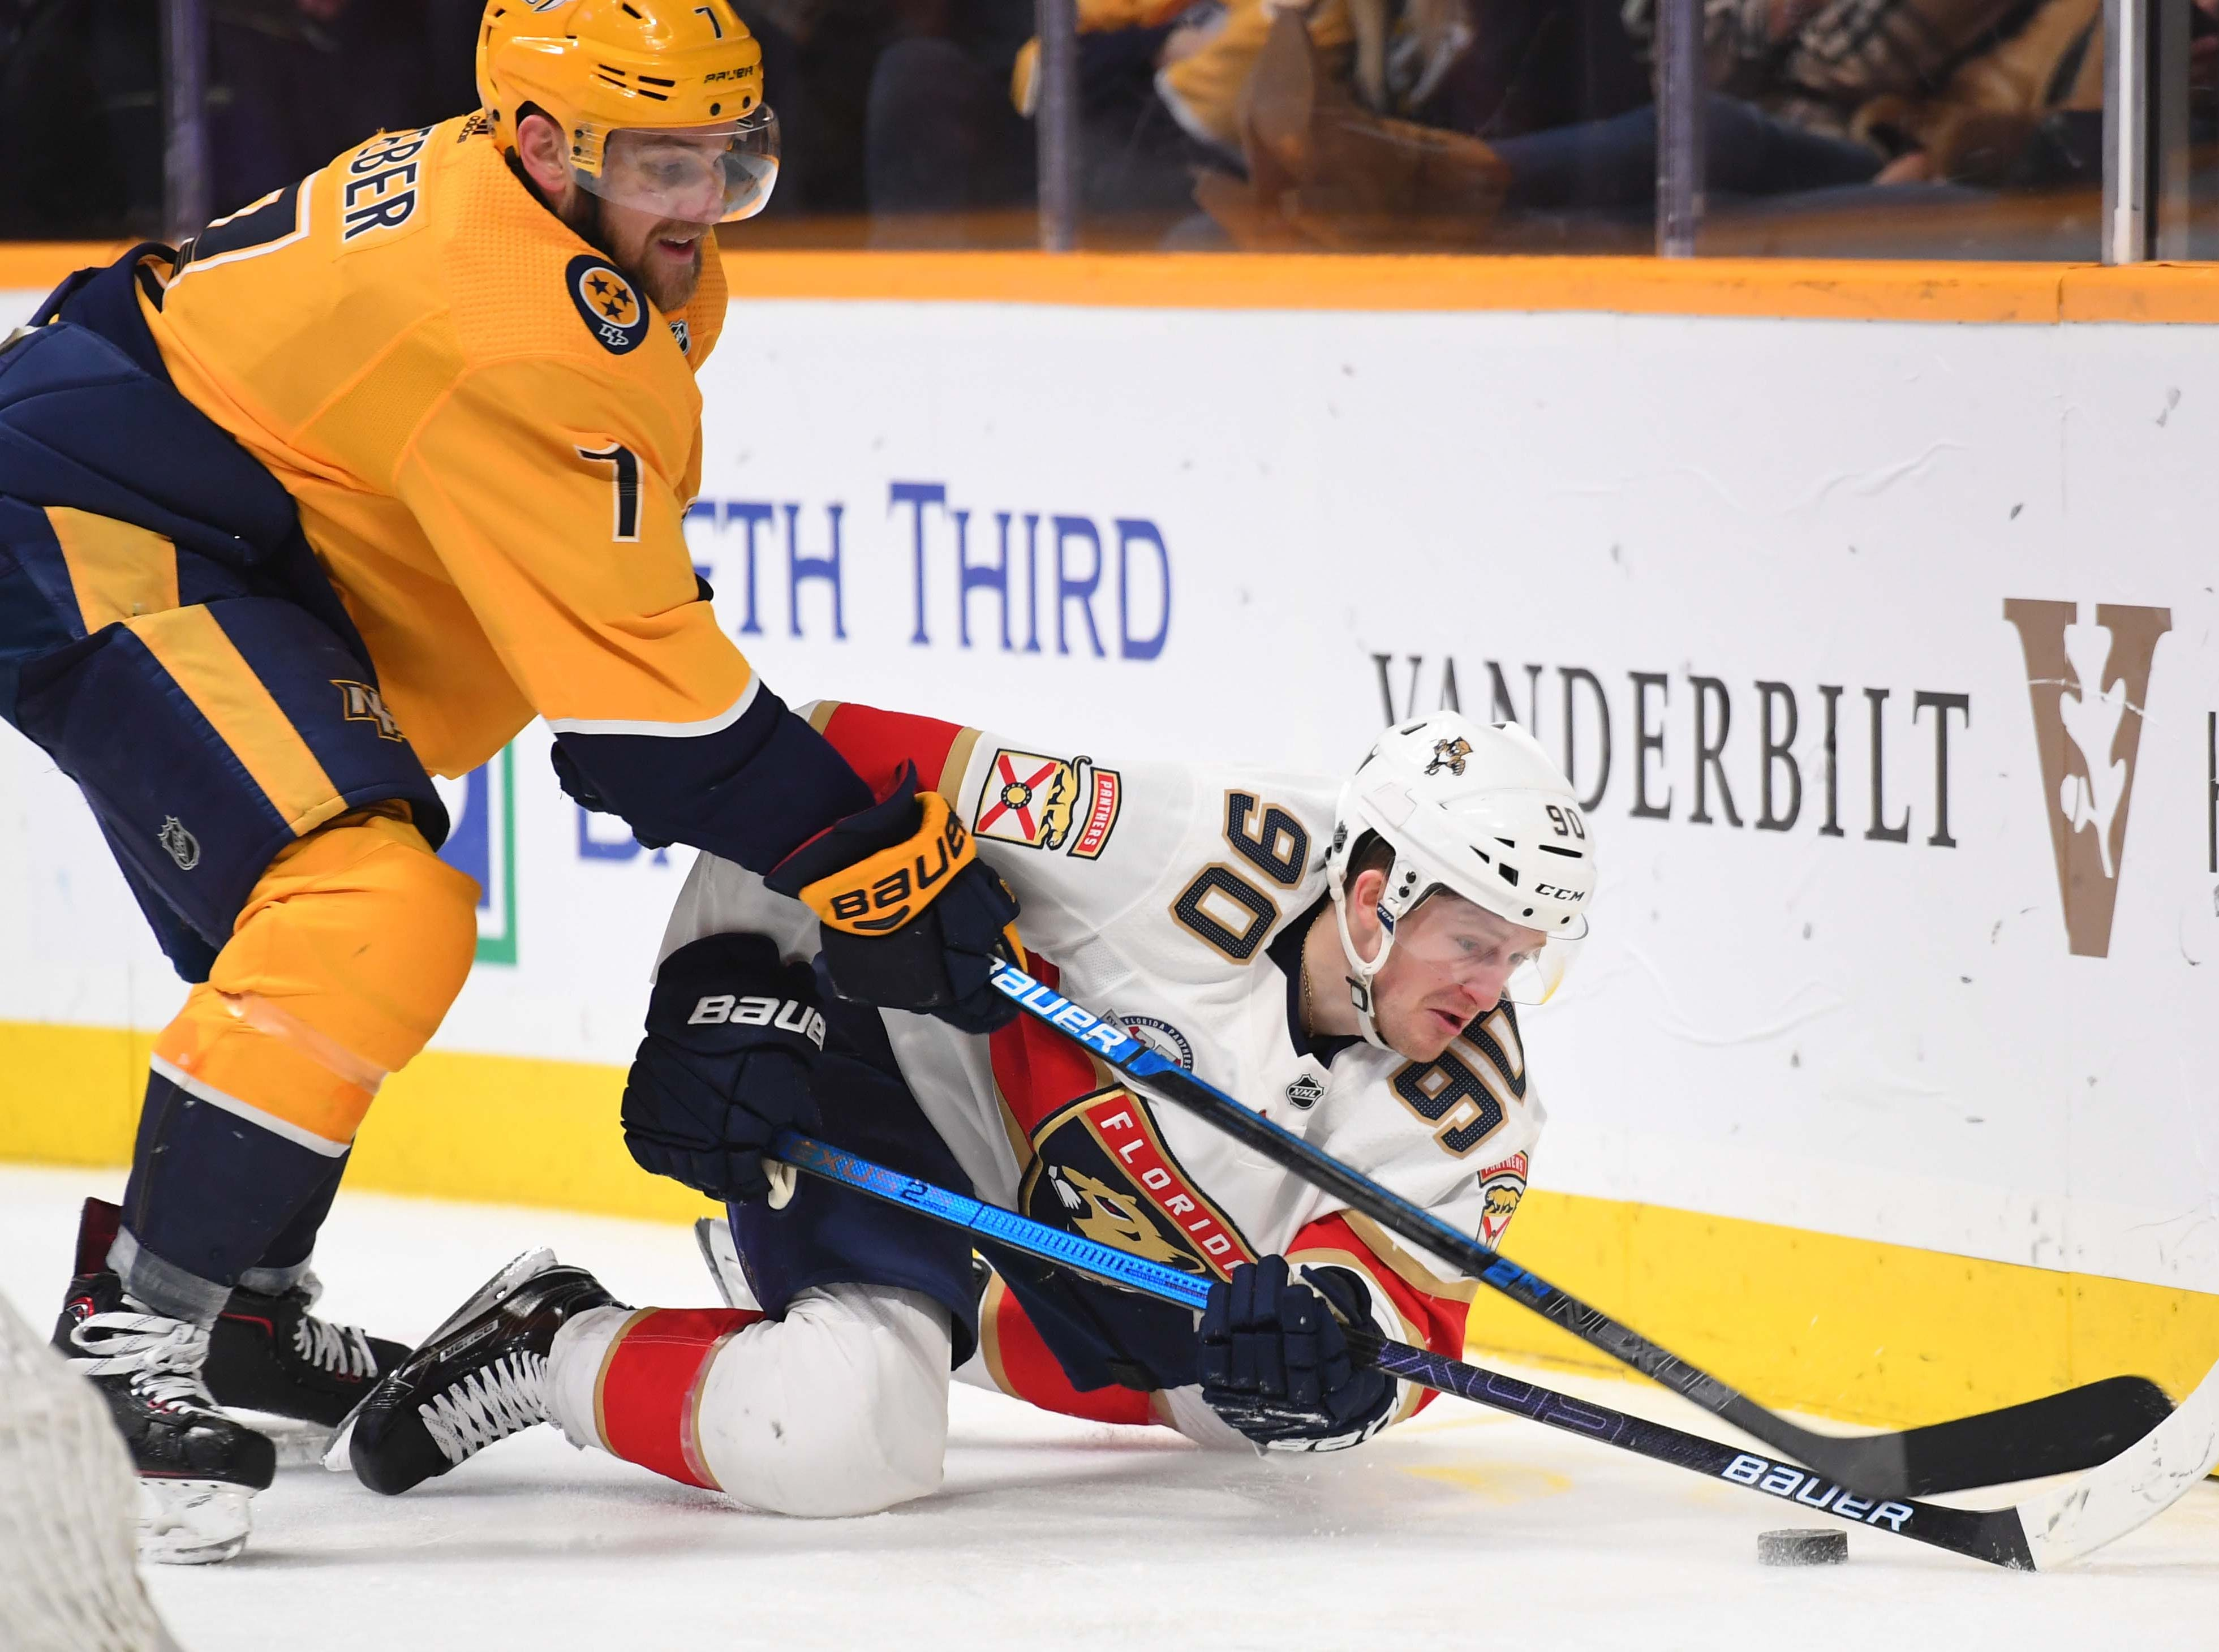 Florida Panthers center Jared McCann (90) works against Nashville Predators defenseman Yannick Weber (7) after drawing a tripping penalty during the second period at Bridgestone Arena.